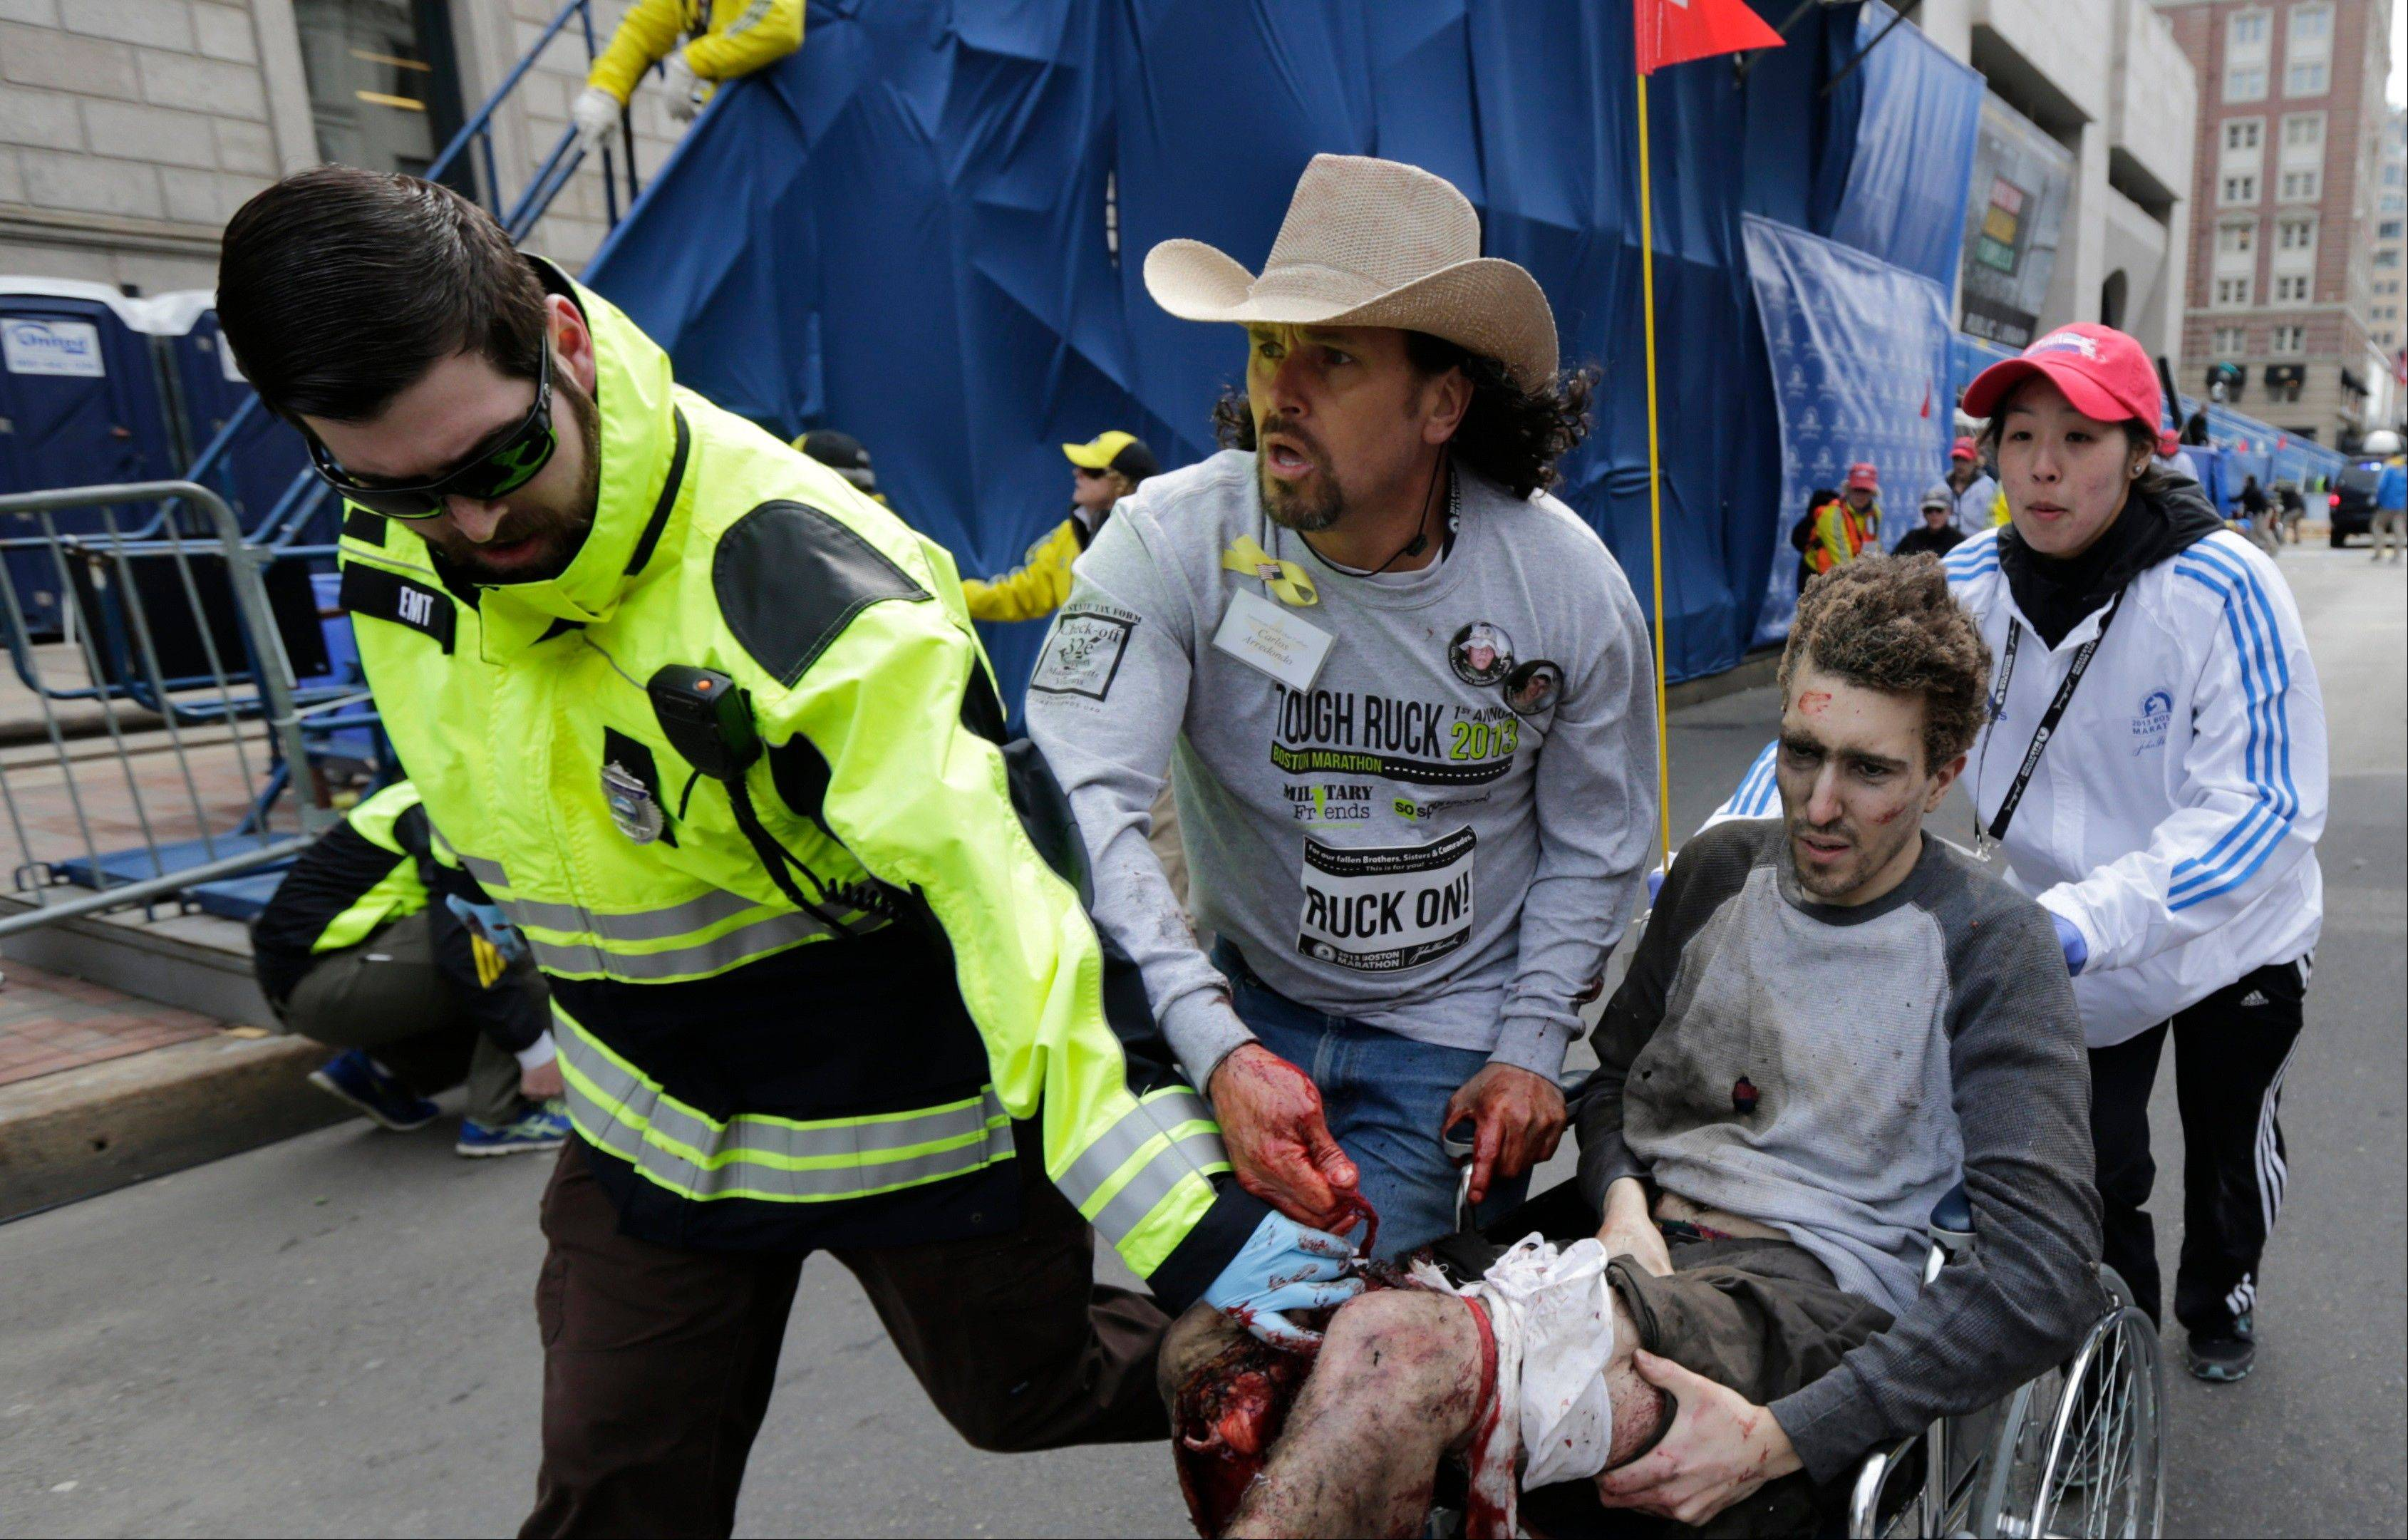 An emergency responder and volunteers, including Carlos Arredondo, in the cowboy hat, push Jeff Bauman in a wheelchair Monday after he was injured in one of two explosions near the finish line of the Boston Marathon.